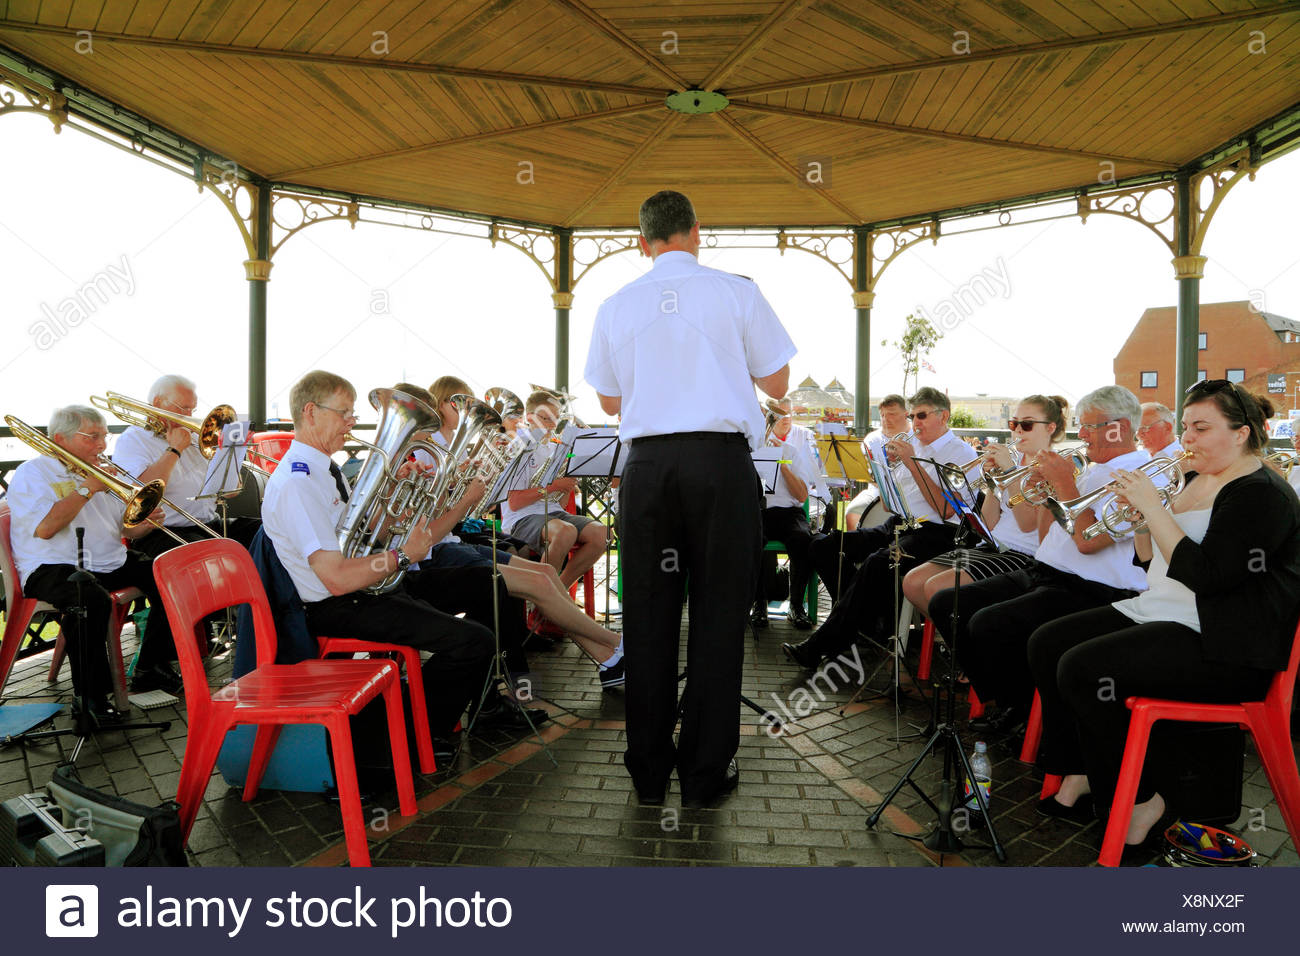 Salvation Army Brass Band, Bandstand, Hunstanton, Norfolk, seaside, entertainment, music, England, UK - Stock Image